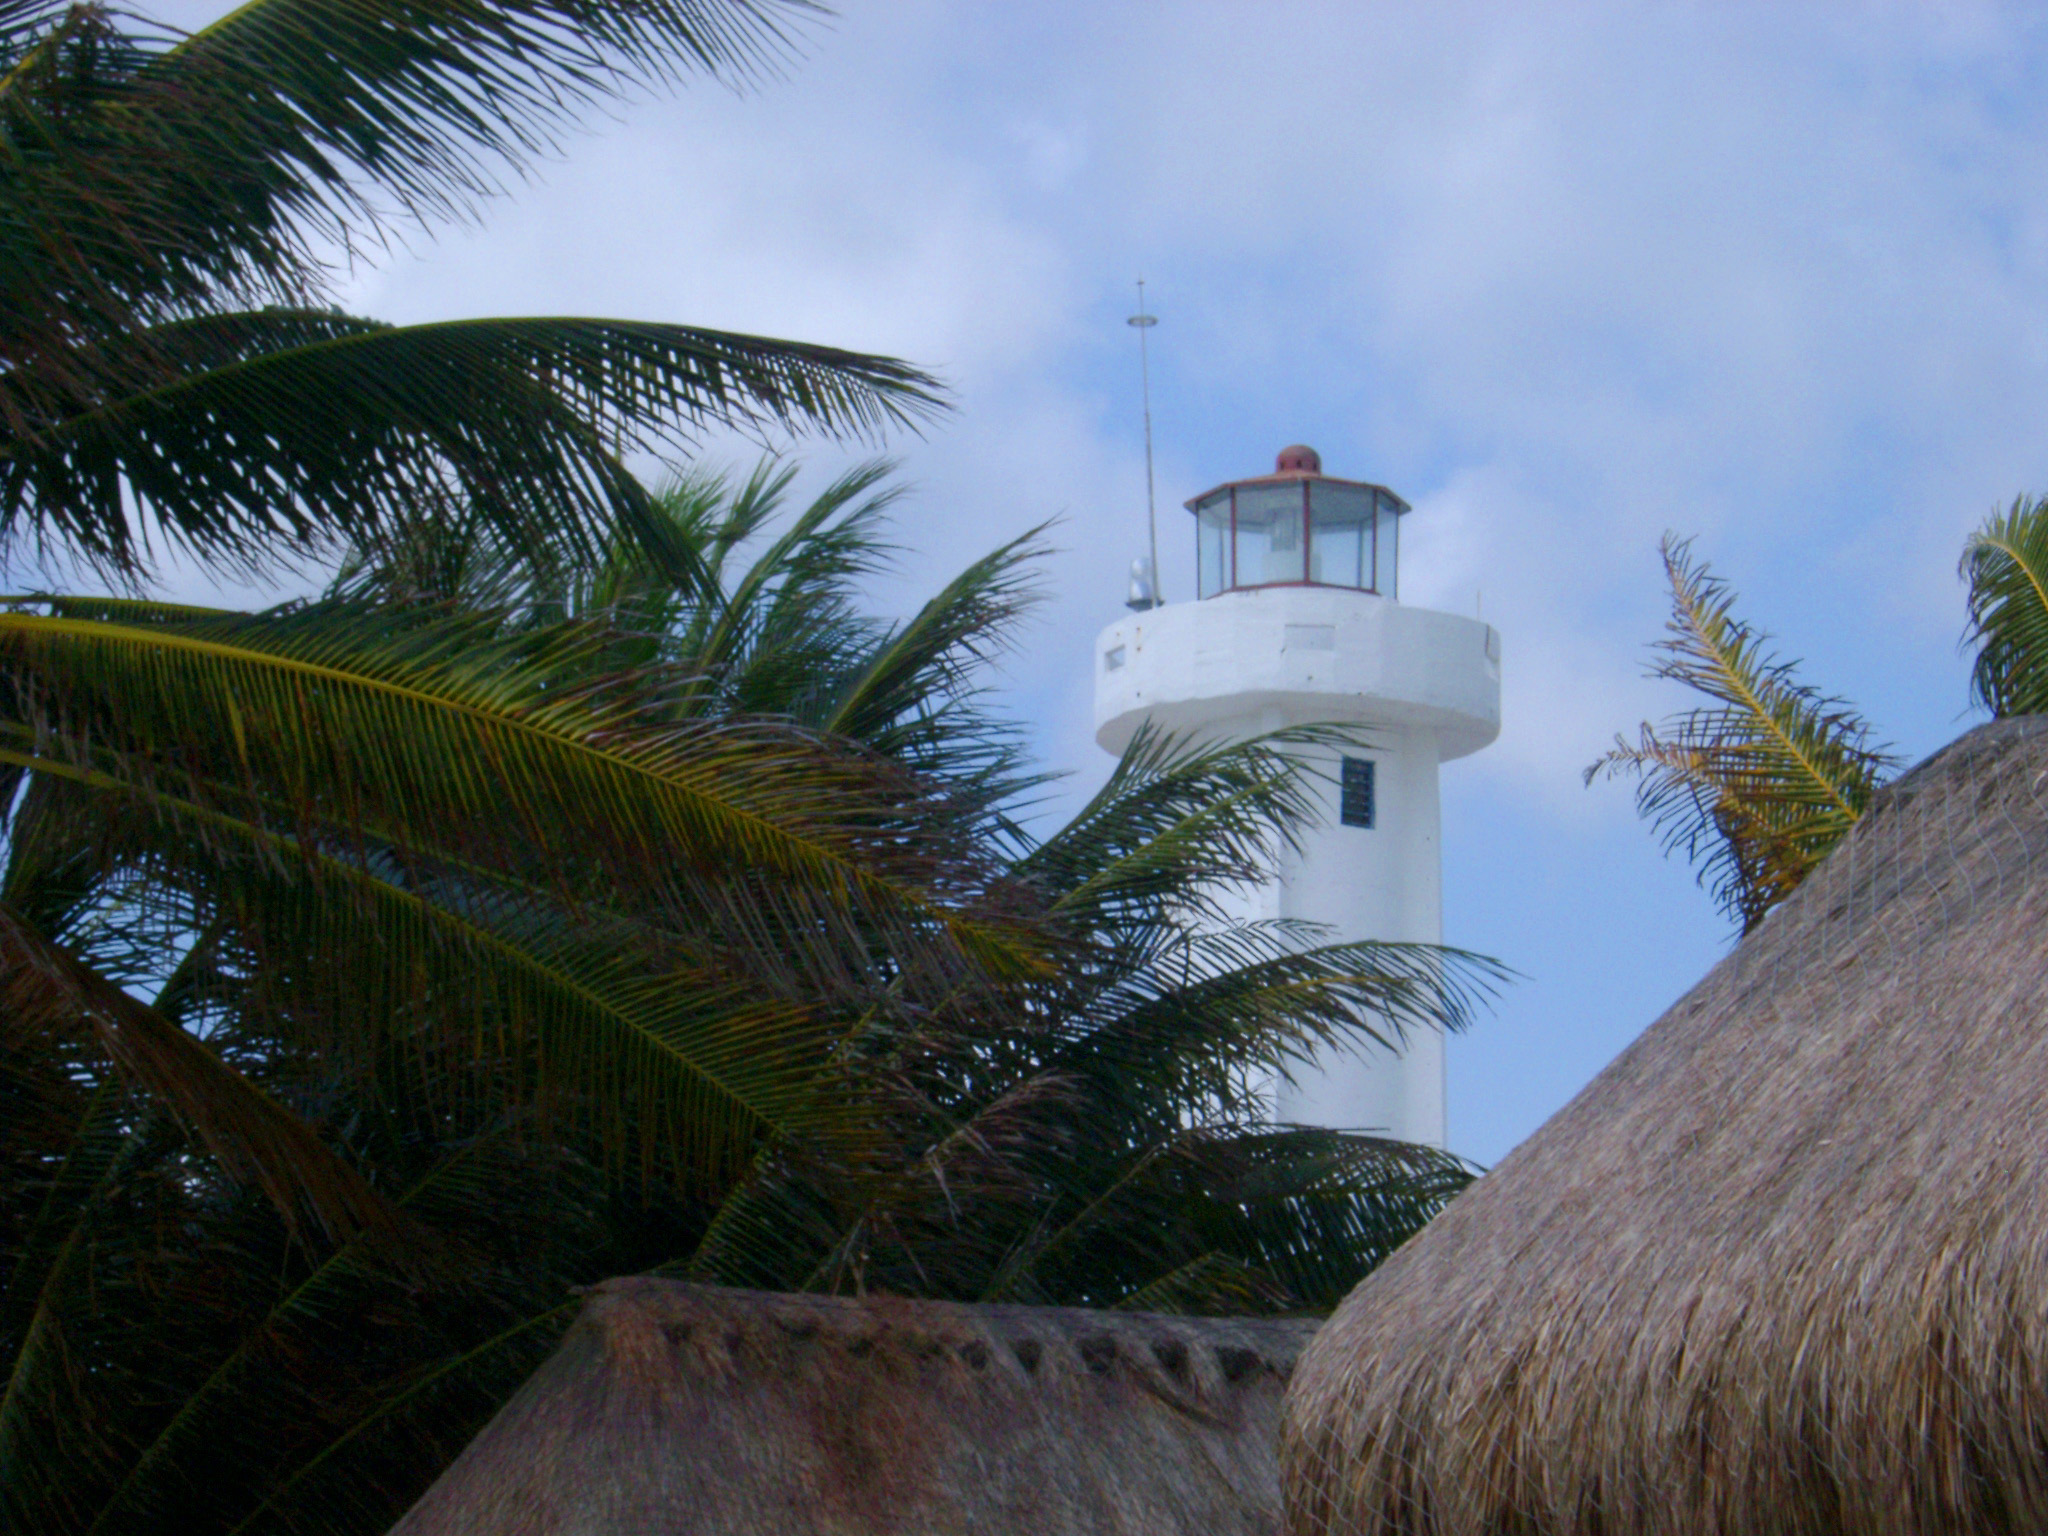 Lighthouse surrounded with palm trees viewed over the thatched roofs of beach cottages in Mexico